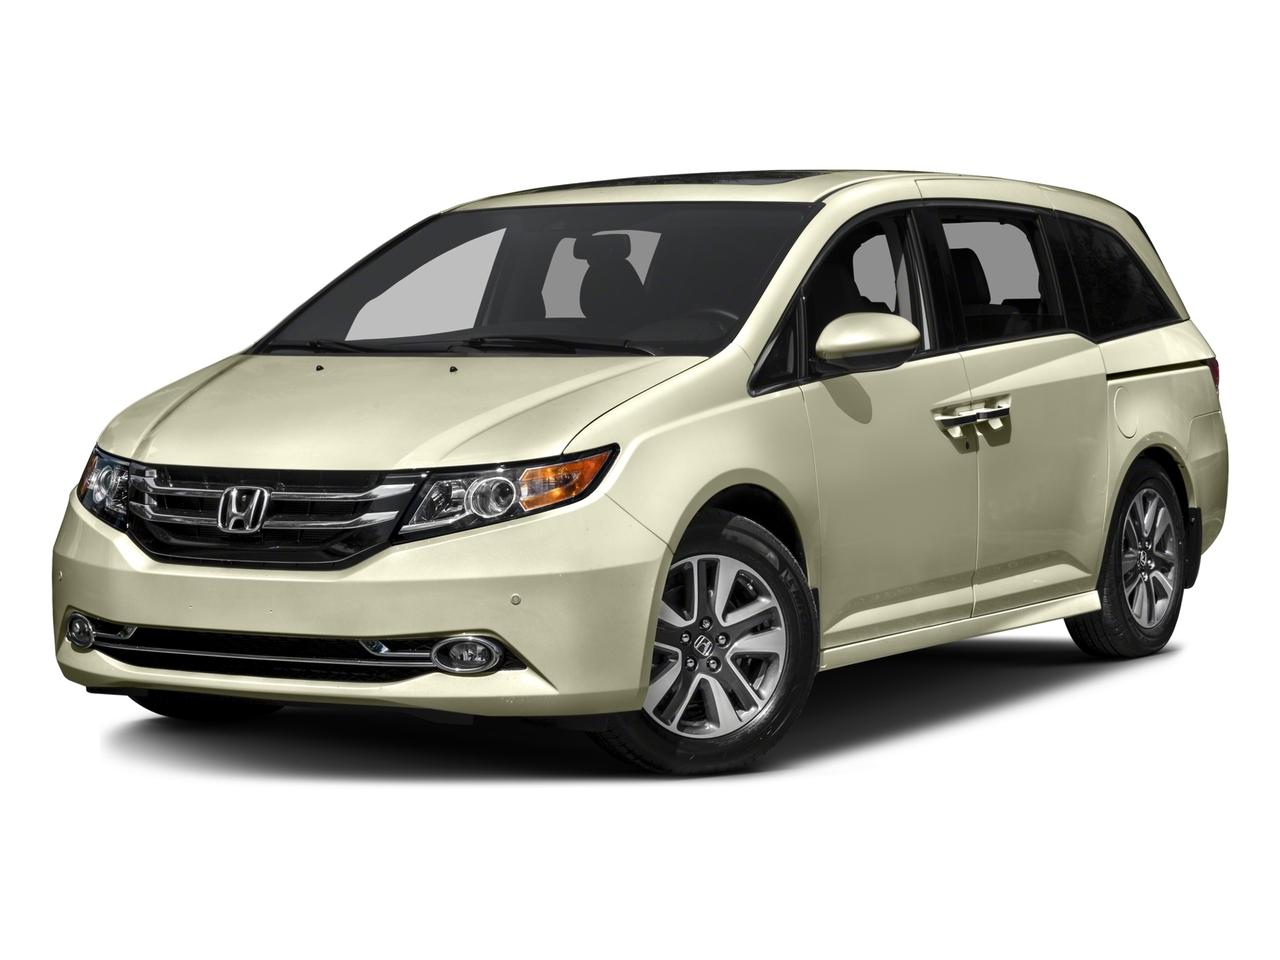 2016 Honda Odyssey Vehicle Photo in Kernersville, NC 27284